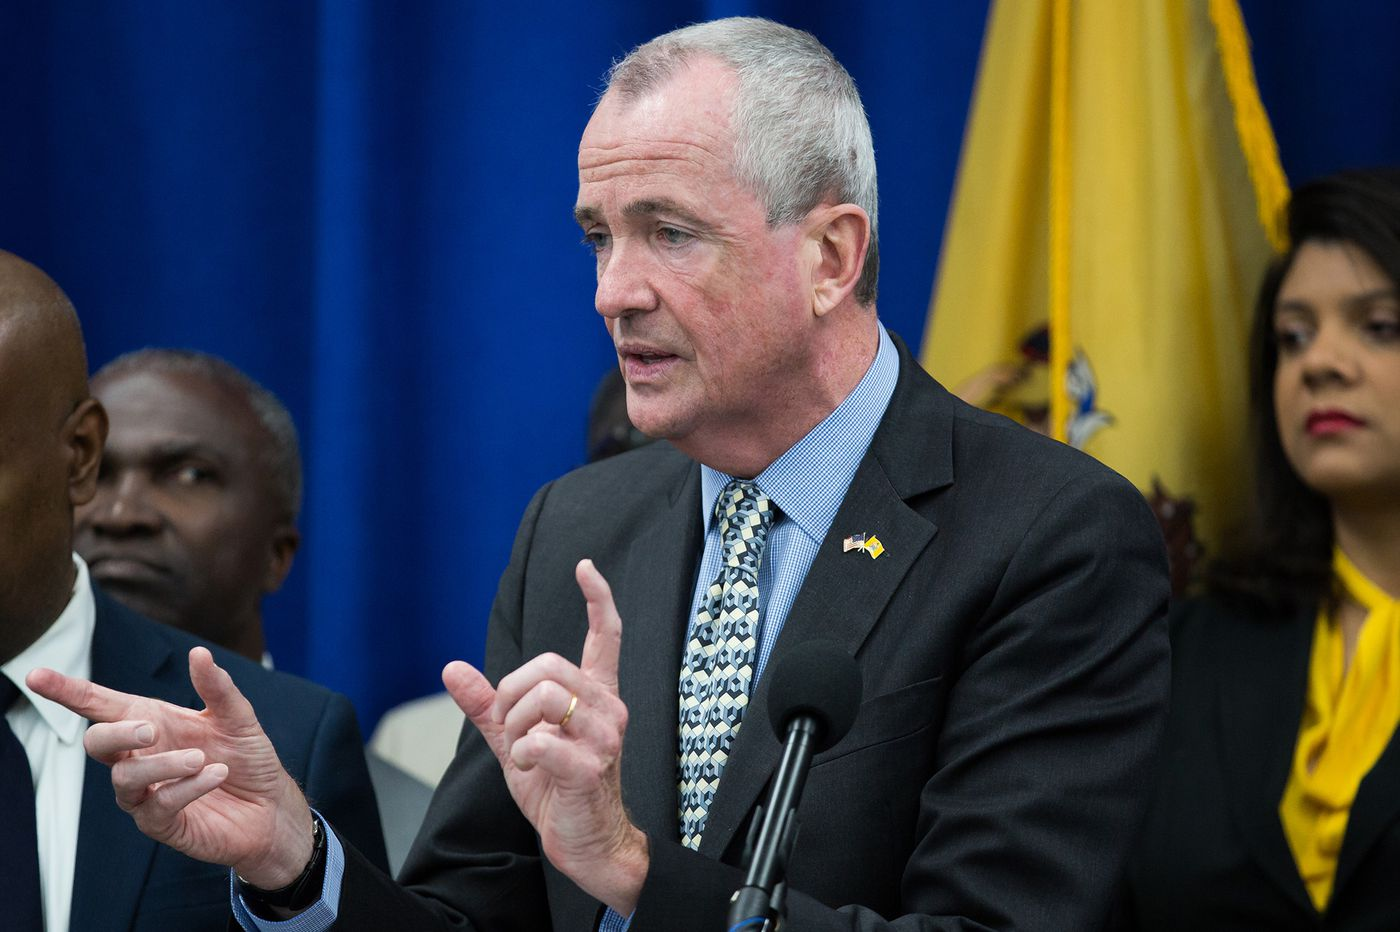 Murphy signs bill expanding family leave in New Jersey